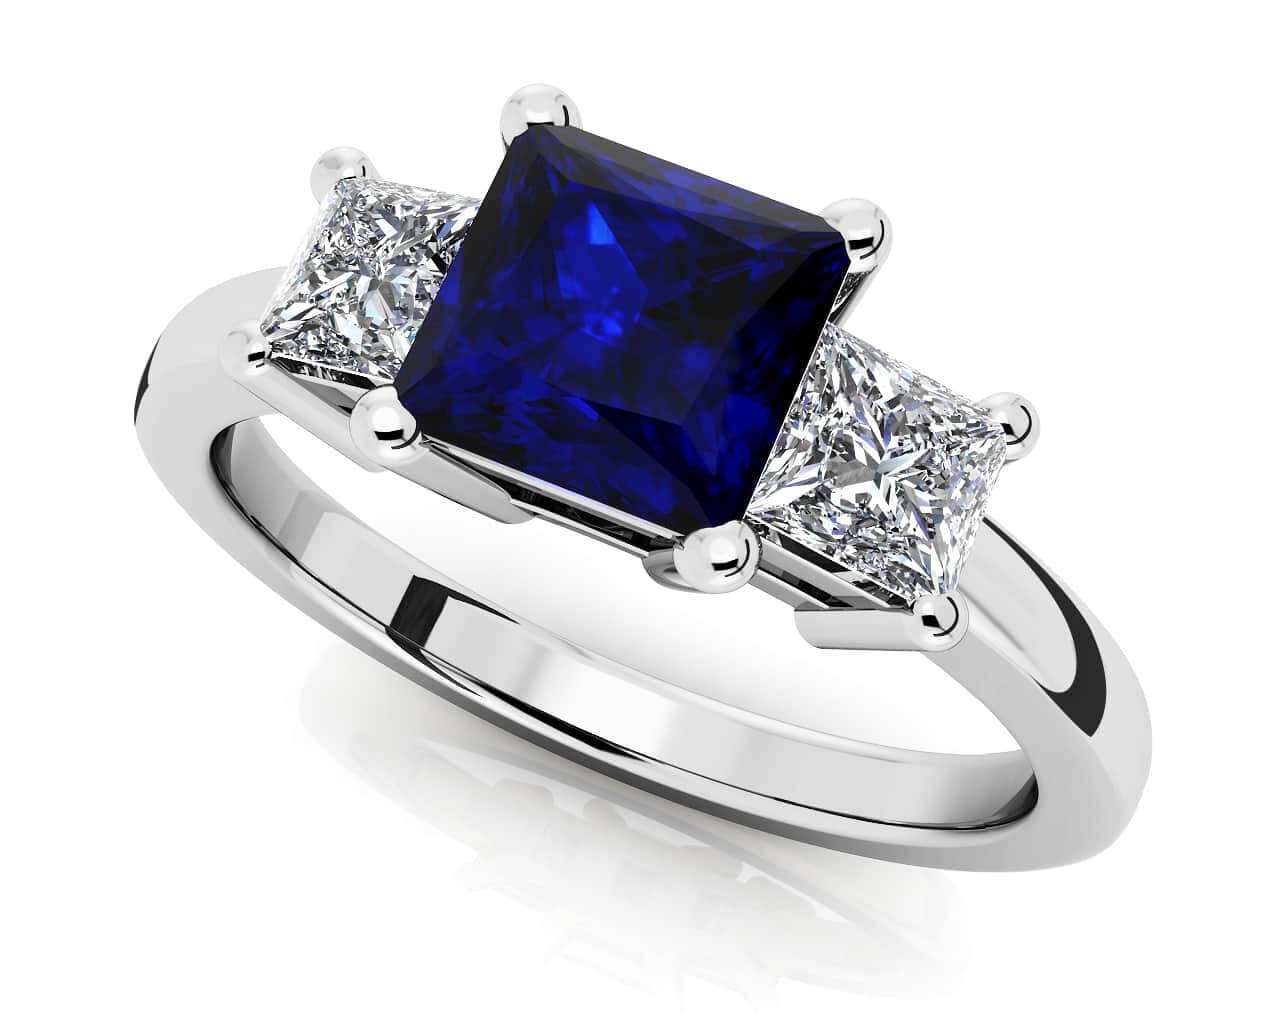 Design Your Own Wedding Rings New Ideas Design Your Own Wedding Ring 3  Stone Princess Diamond